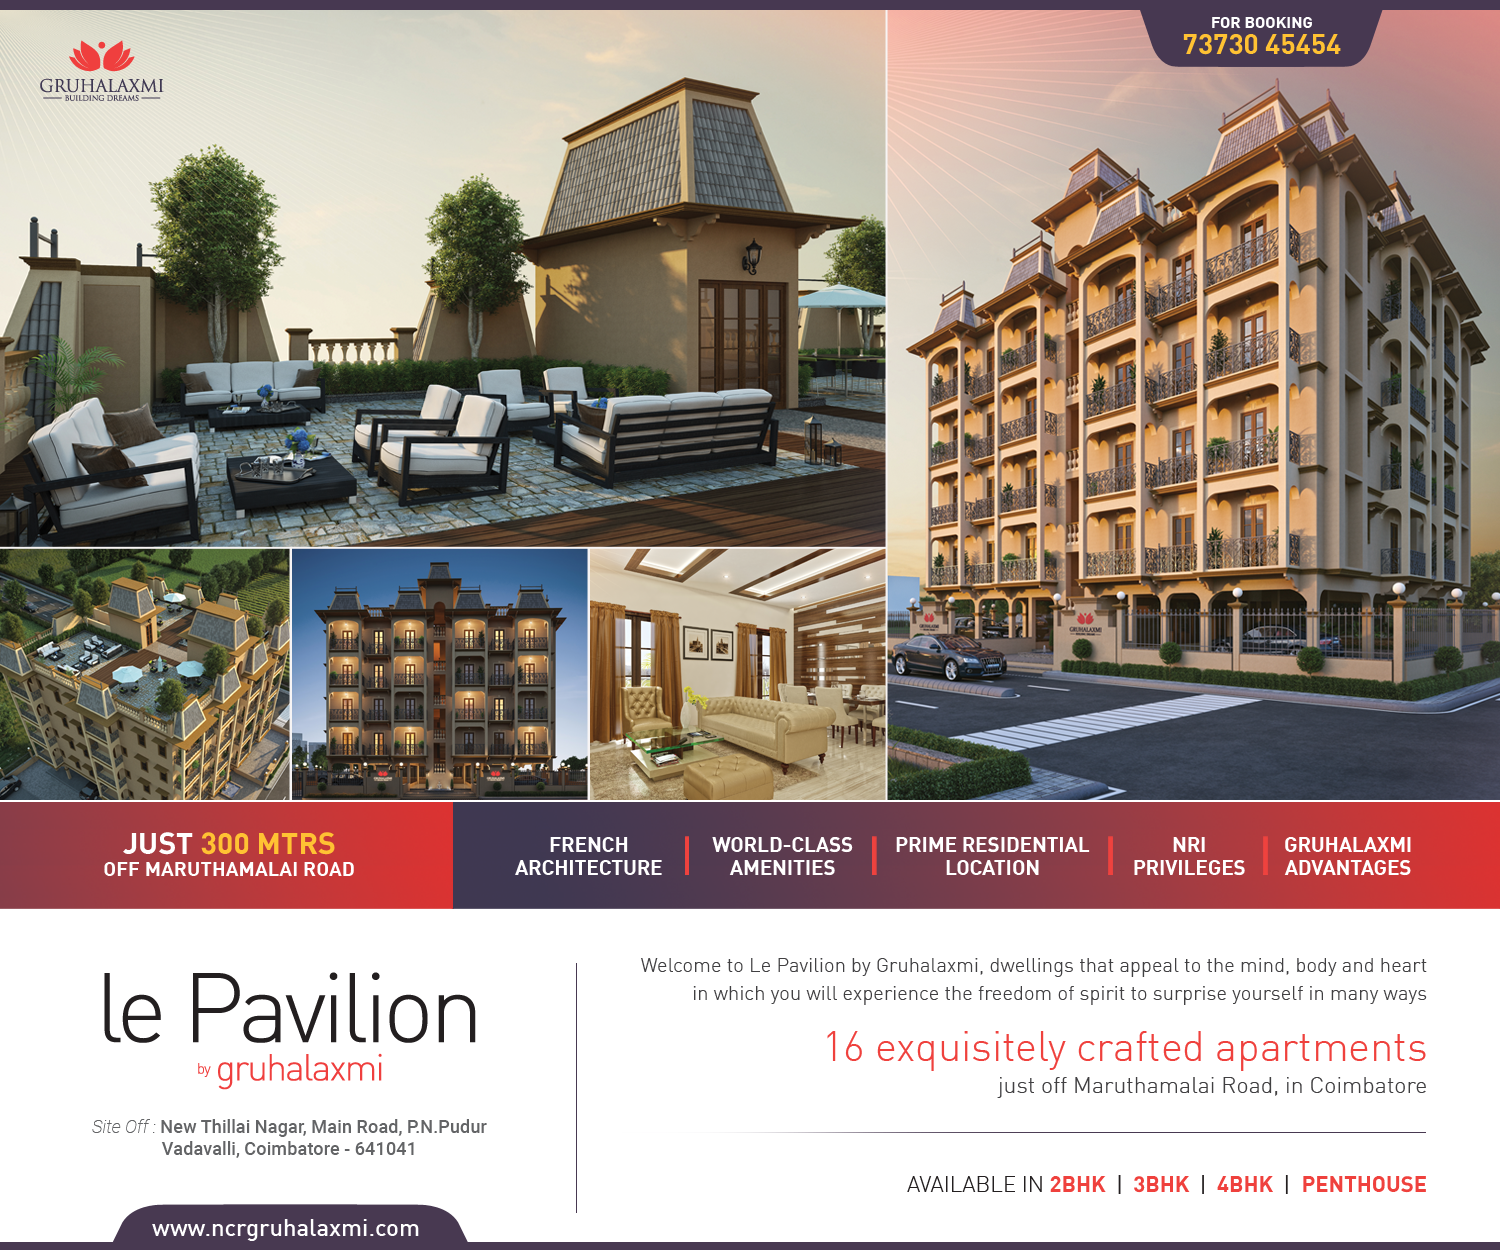 16 exquisitely crafted Apartments. Available 2BHK, 3BHK